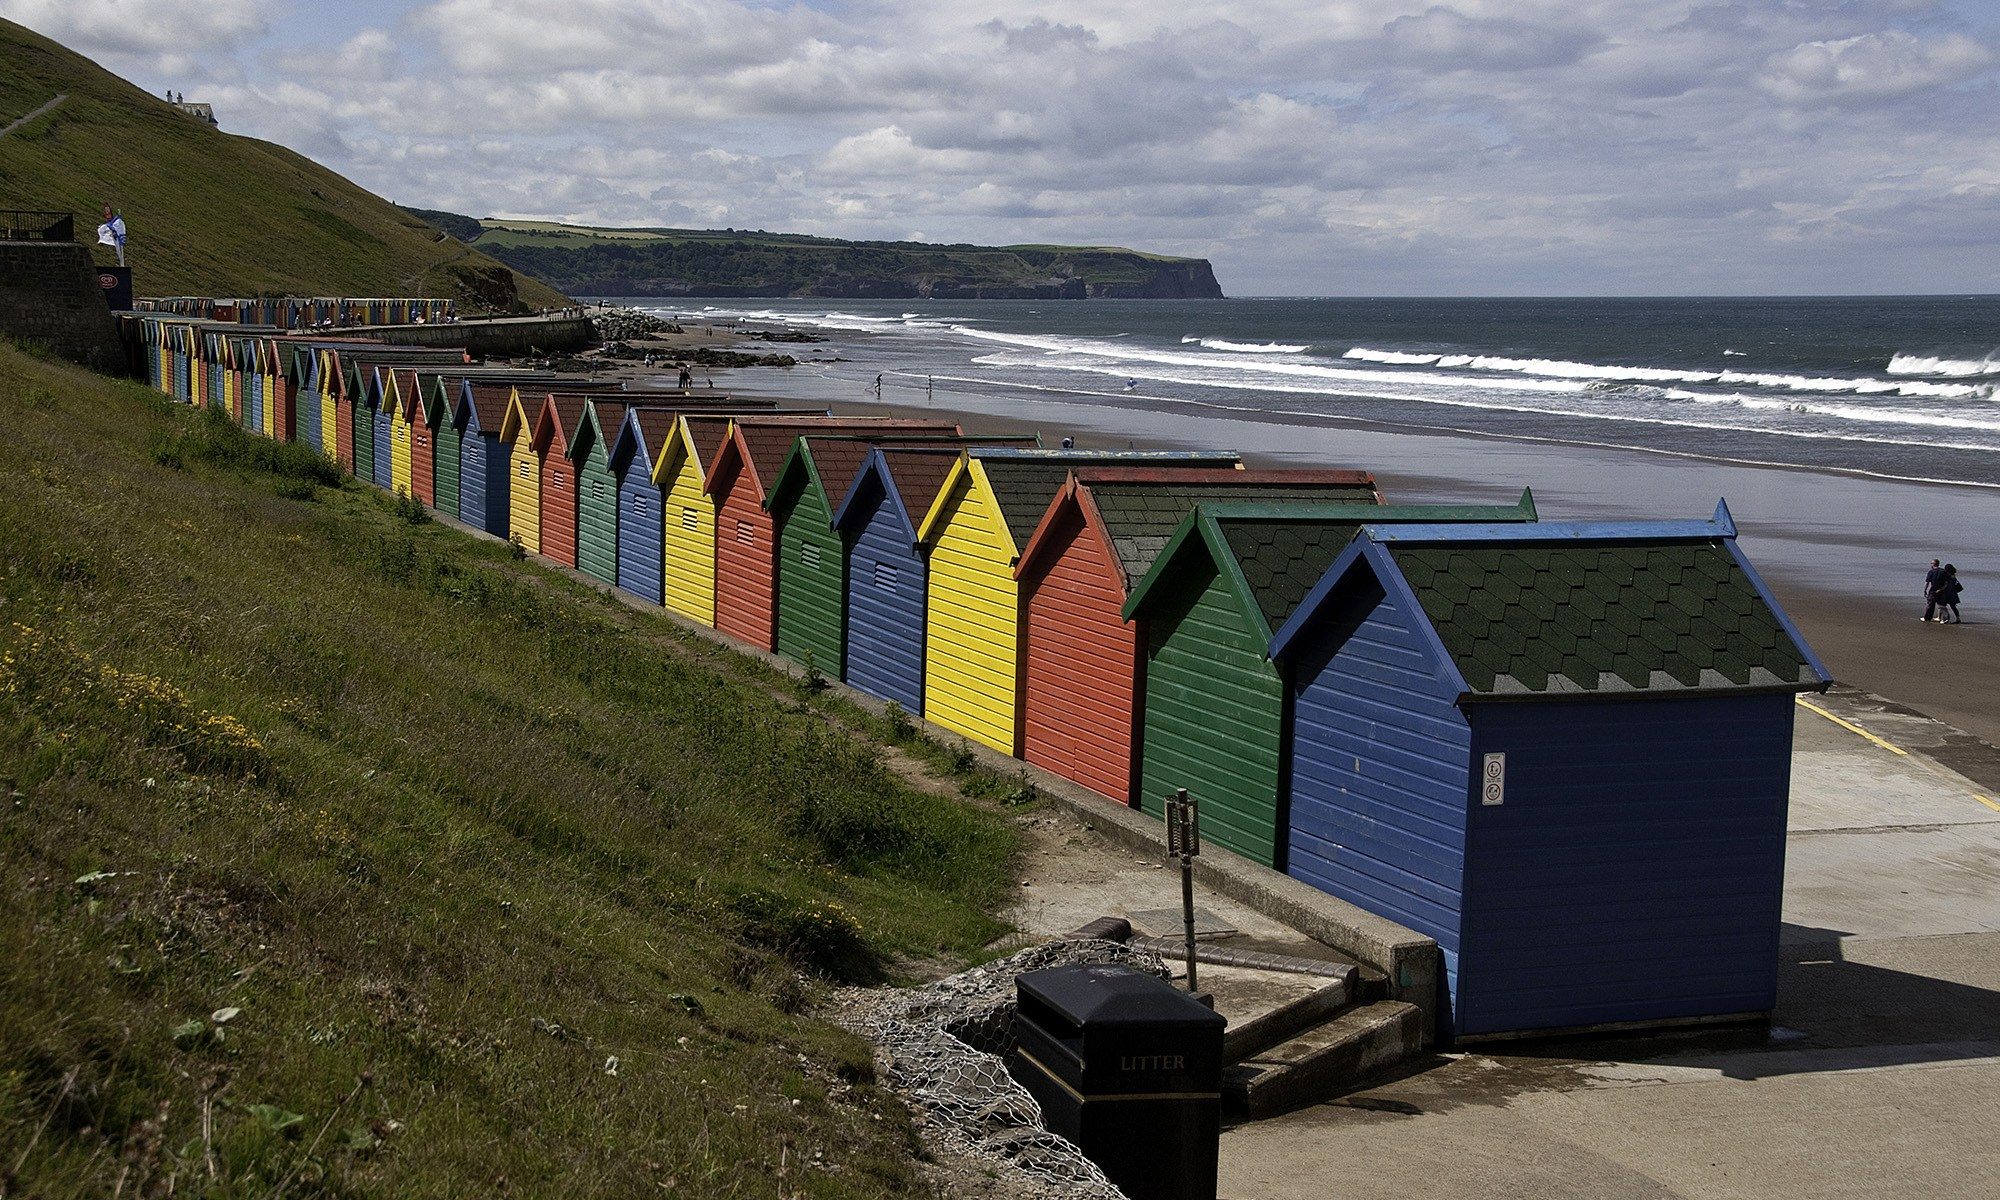 Colourful Beach Huts at Whitby